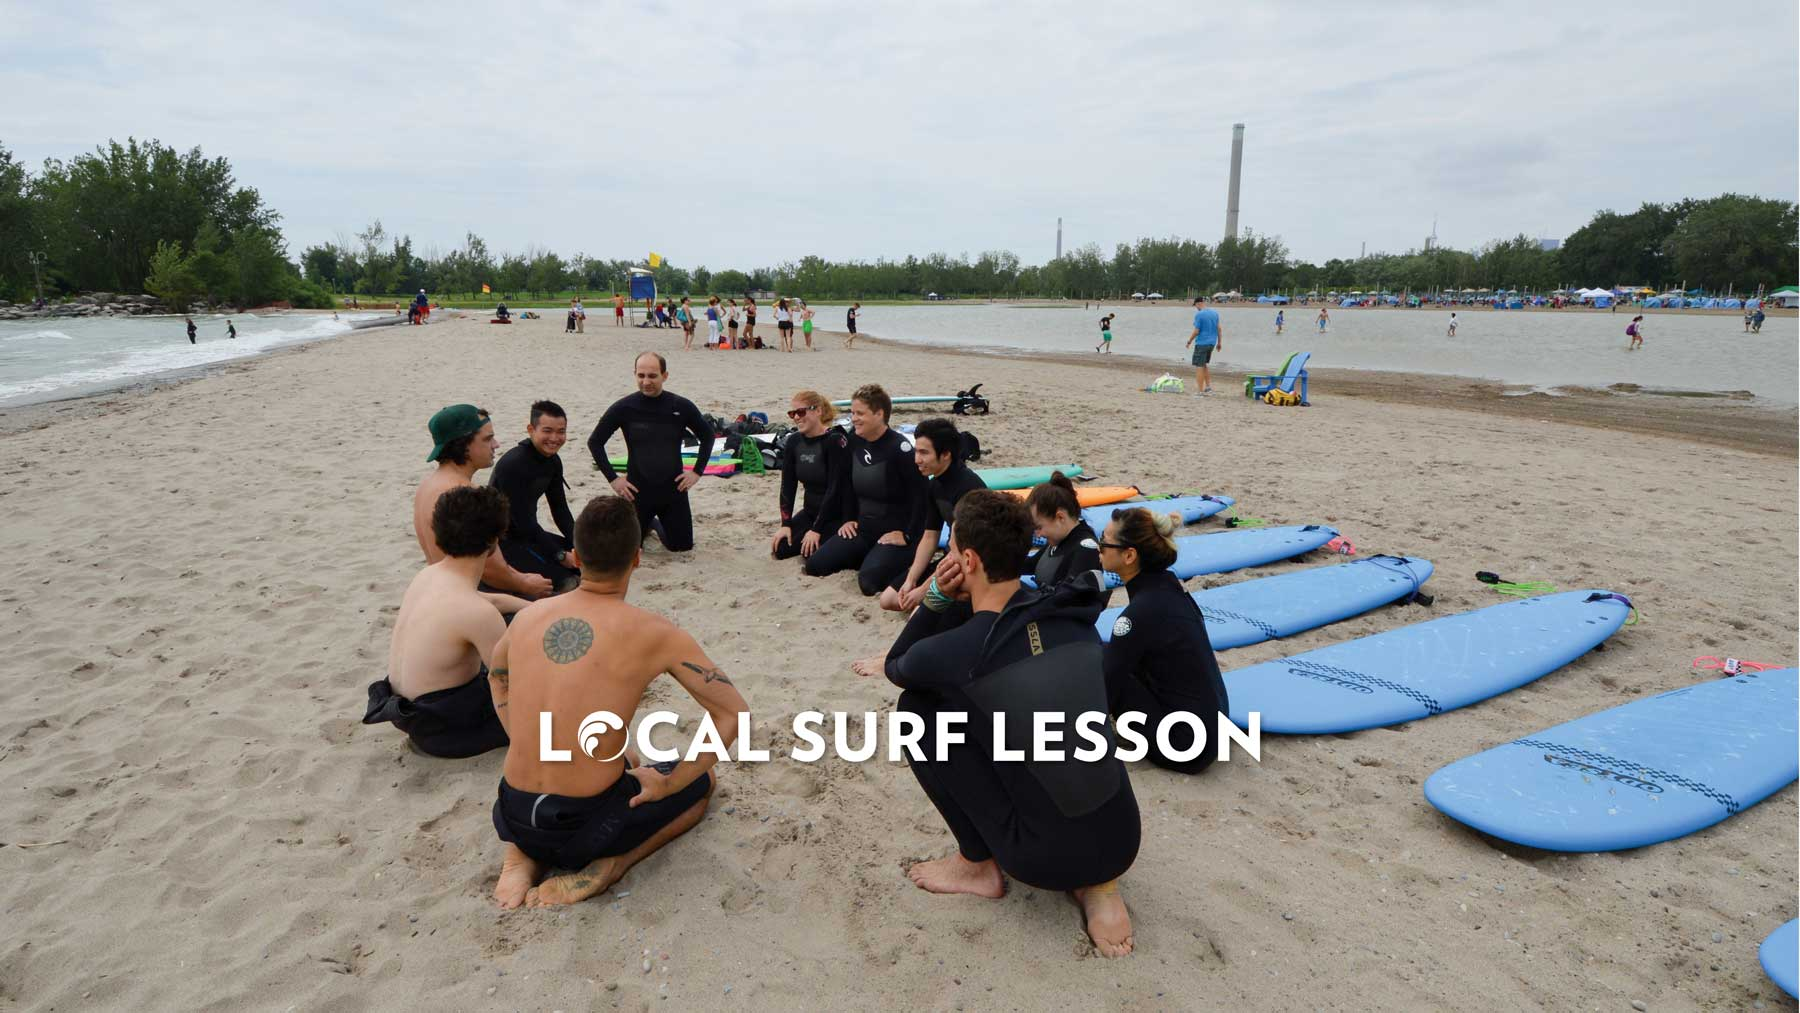 Local Surf Lesson Toronto Lake Ontario Surf on the Great Lakes Learn to Surf